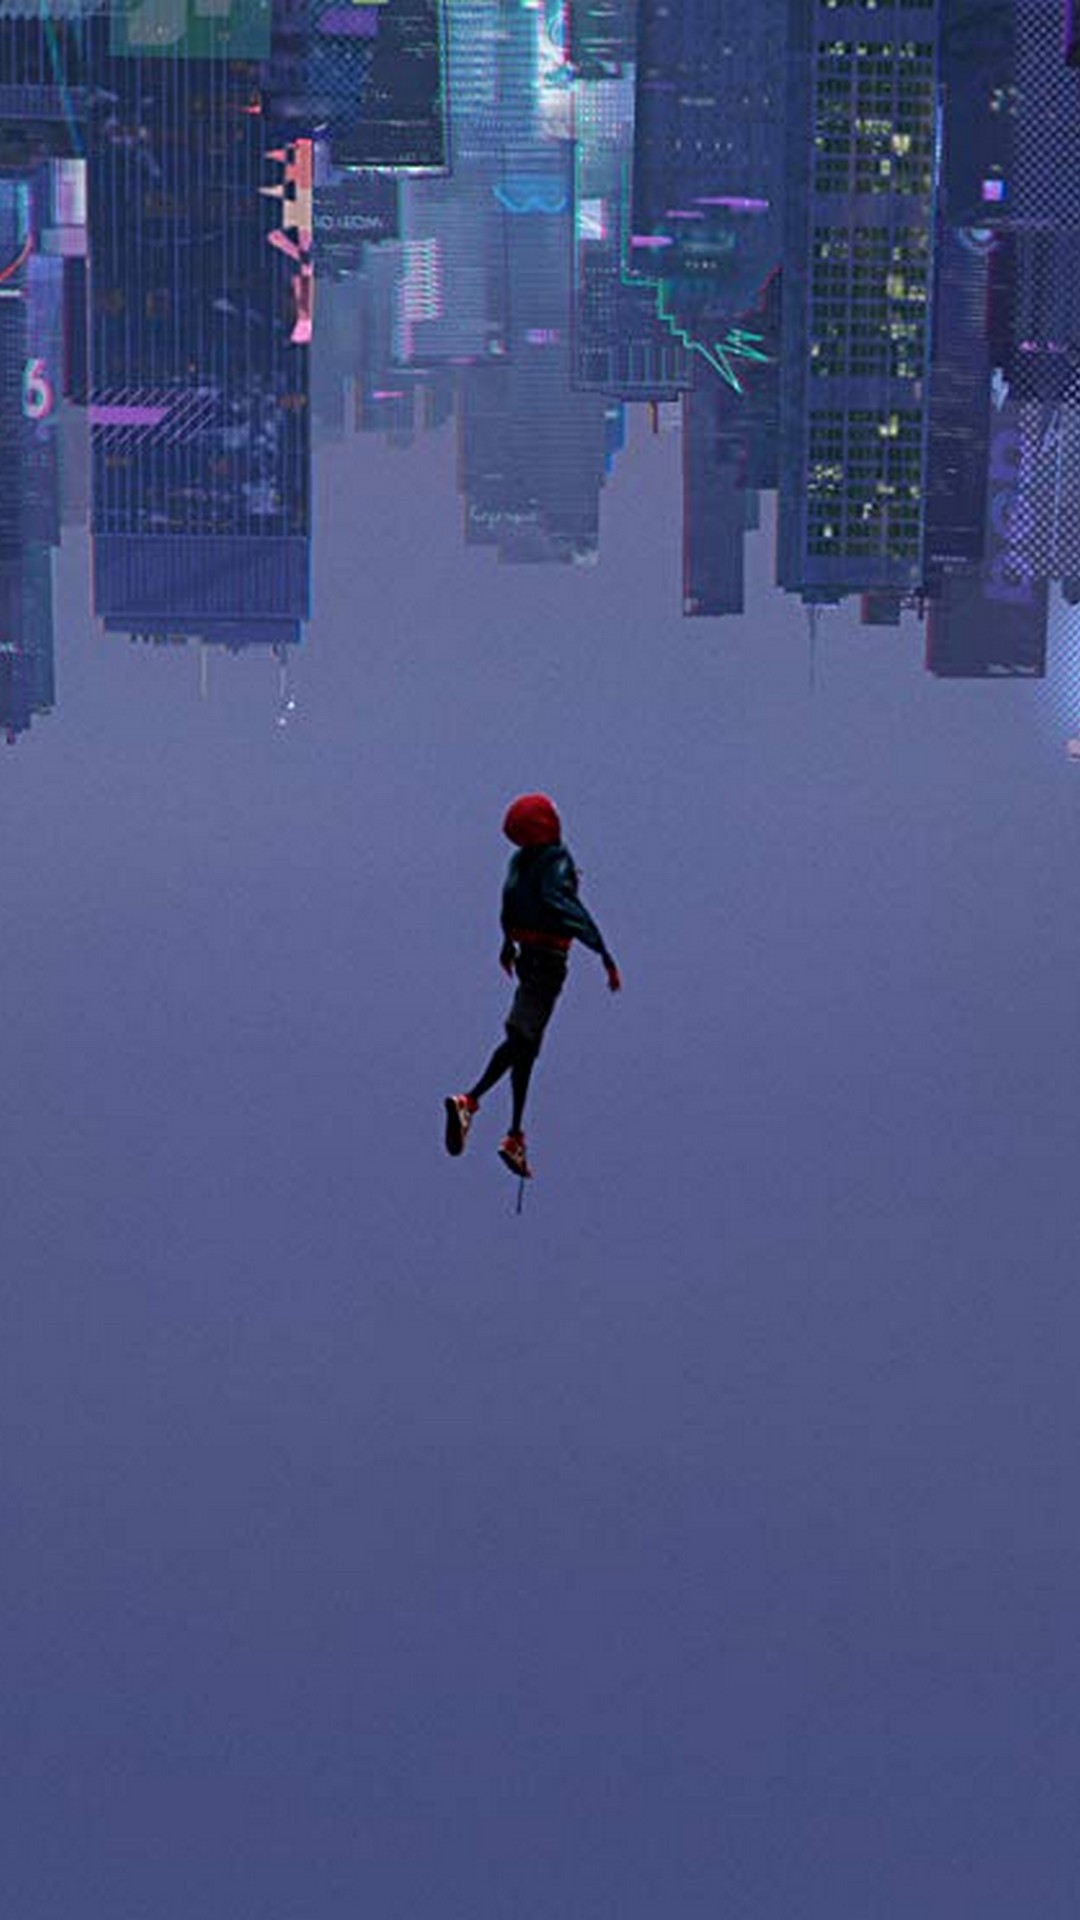 Spider-Man Into the Spider-Verse 2018 iPhone 7 Wallpaper with resolution 1080x1920 pixel. You can make this wallpaper for your Mac or Windows Desktop Background, iPhone, Android or Tablet and another Smartphone device